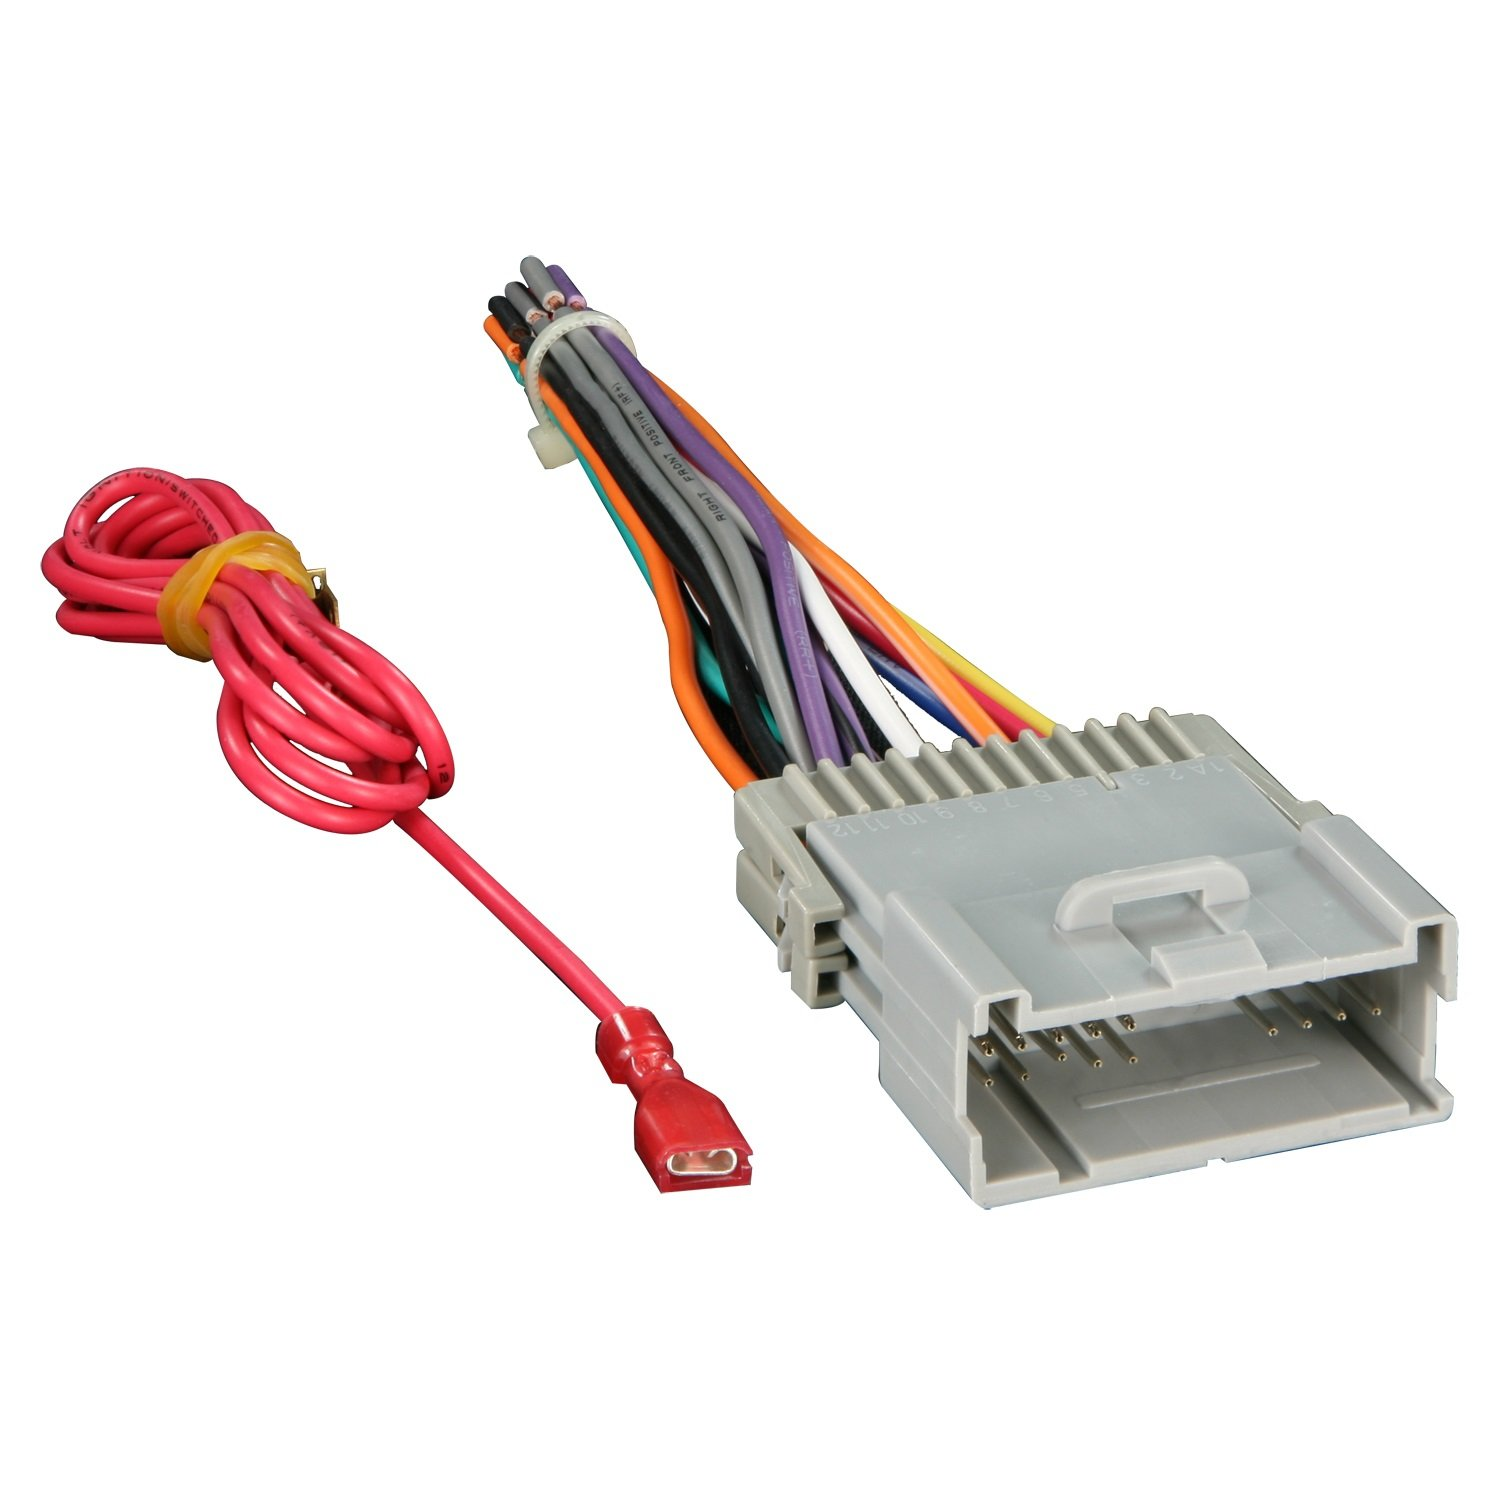 61eewxp9orL._SL1500_ amazon com metra 70 2003 radio wiring harness for gm 98 08 wiring harness for car stereo installation at mr168.co